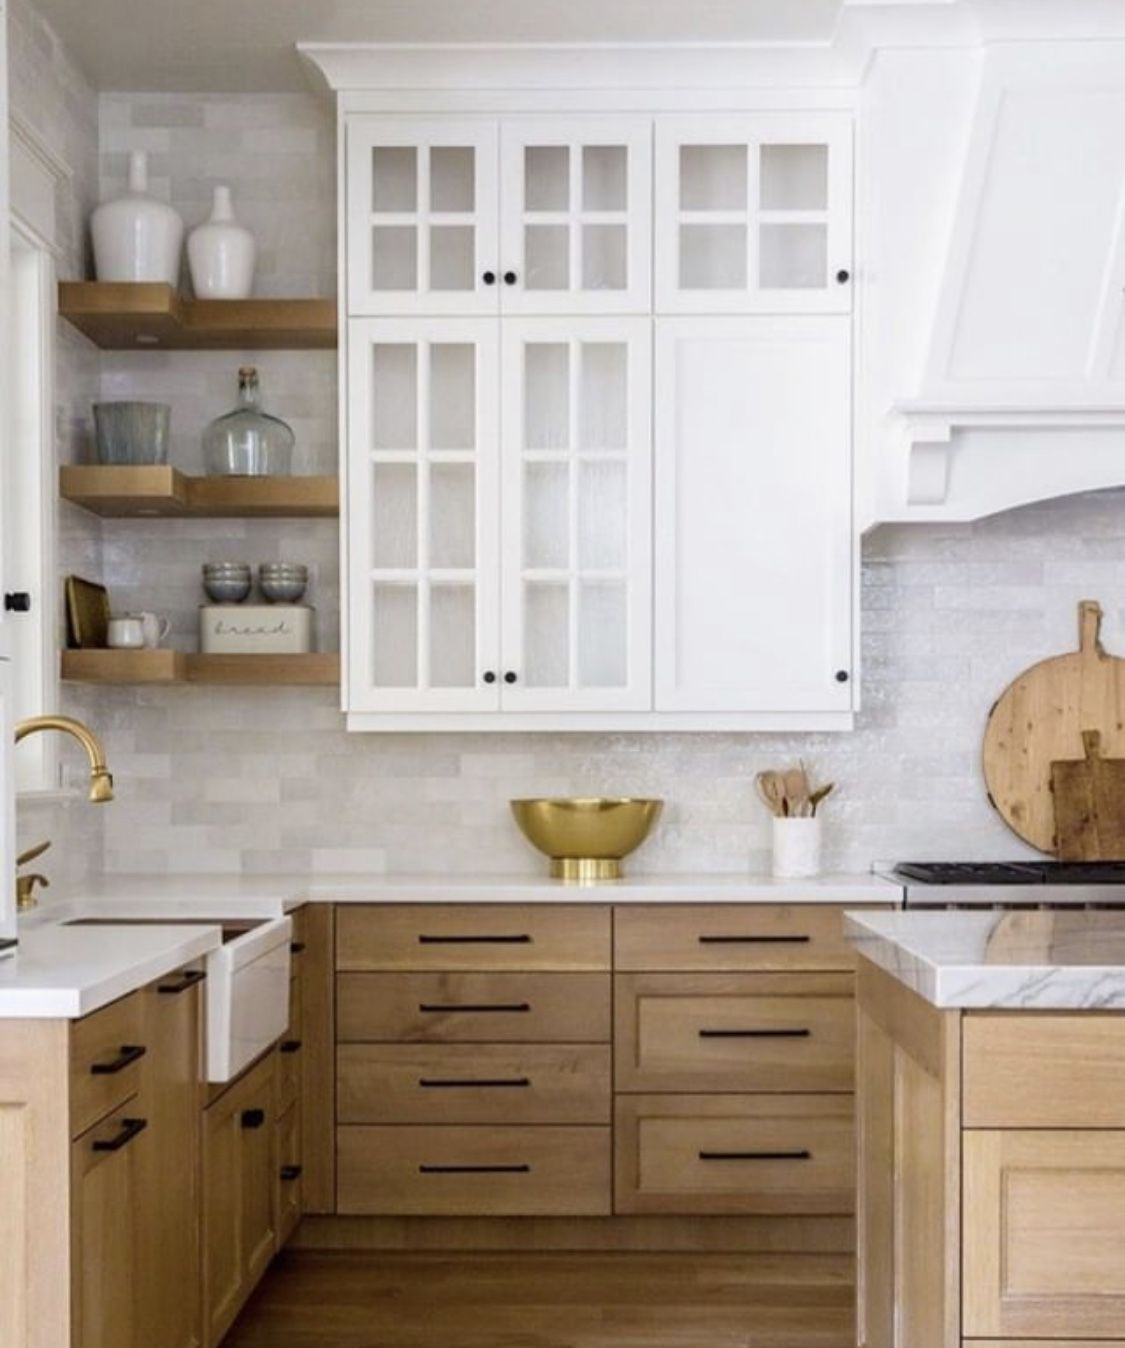 Quartersawn White Oak Kitchen Cabinets Friday Eye Candy A Thoughtful Place Kitchen Design Kitchen Inspirations Home Kitchens